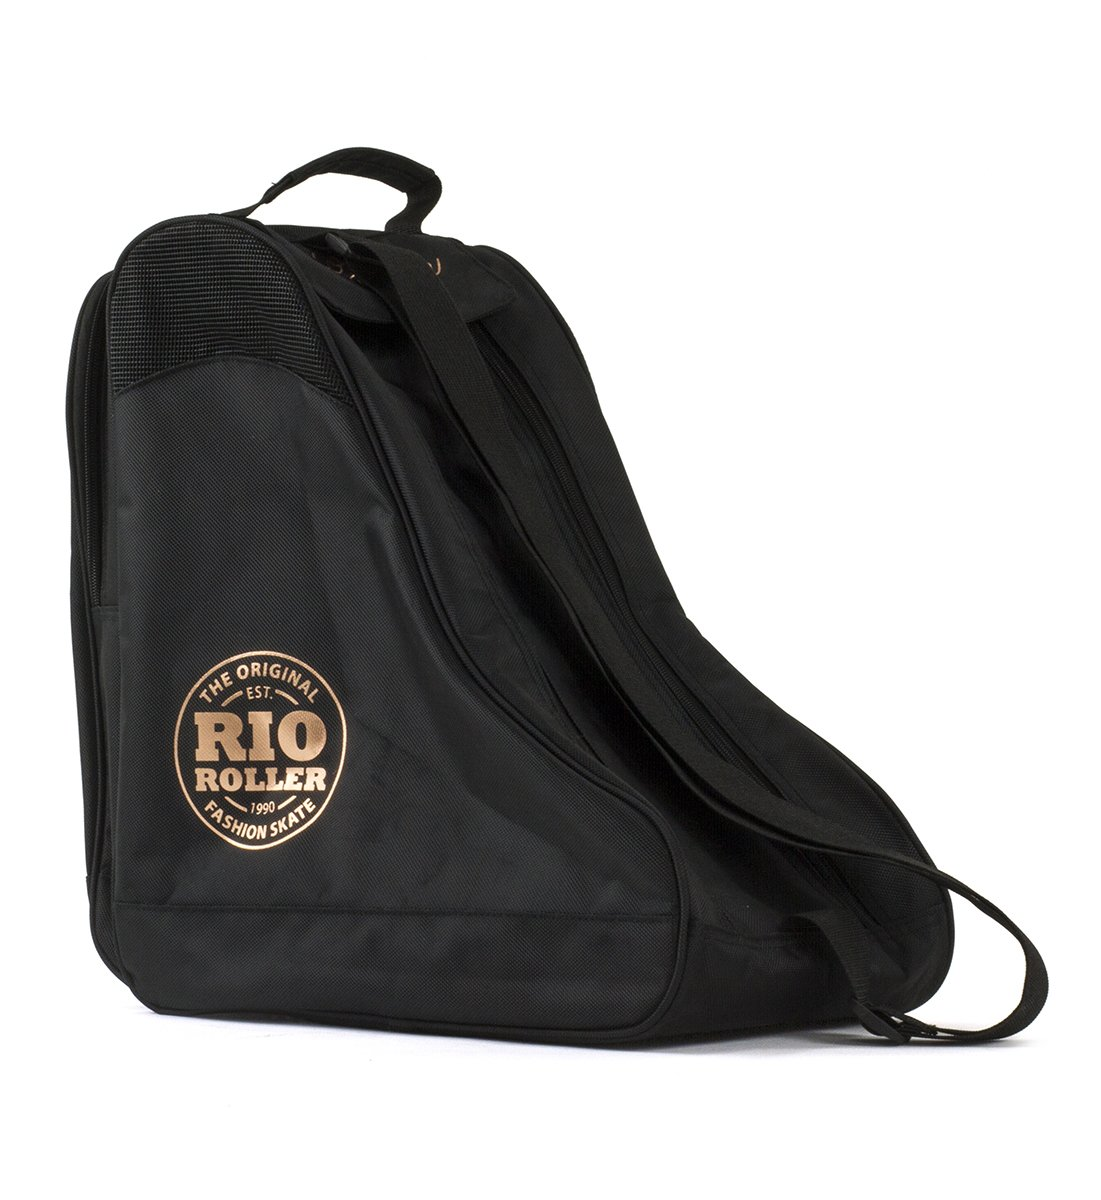 Rio Roller - Rose Bag - Rose Gold - obal na brusle